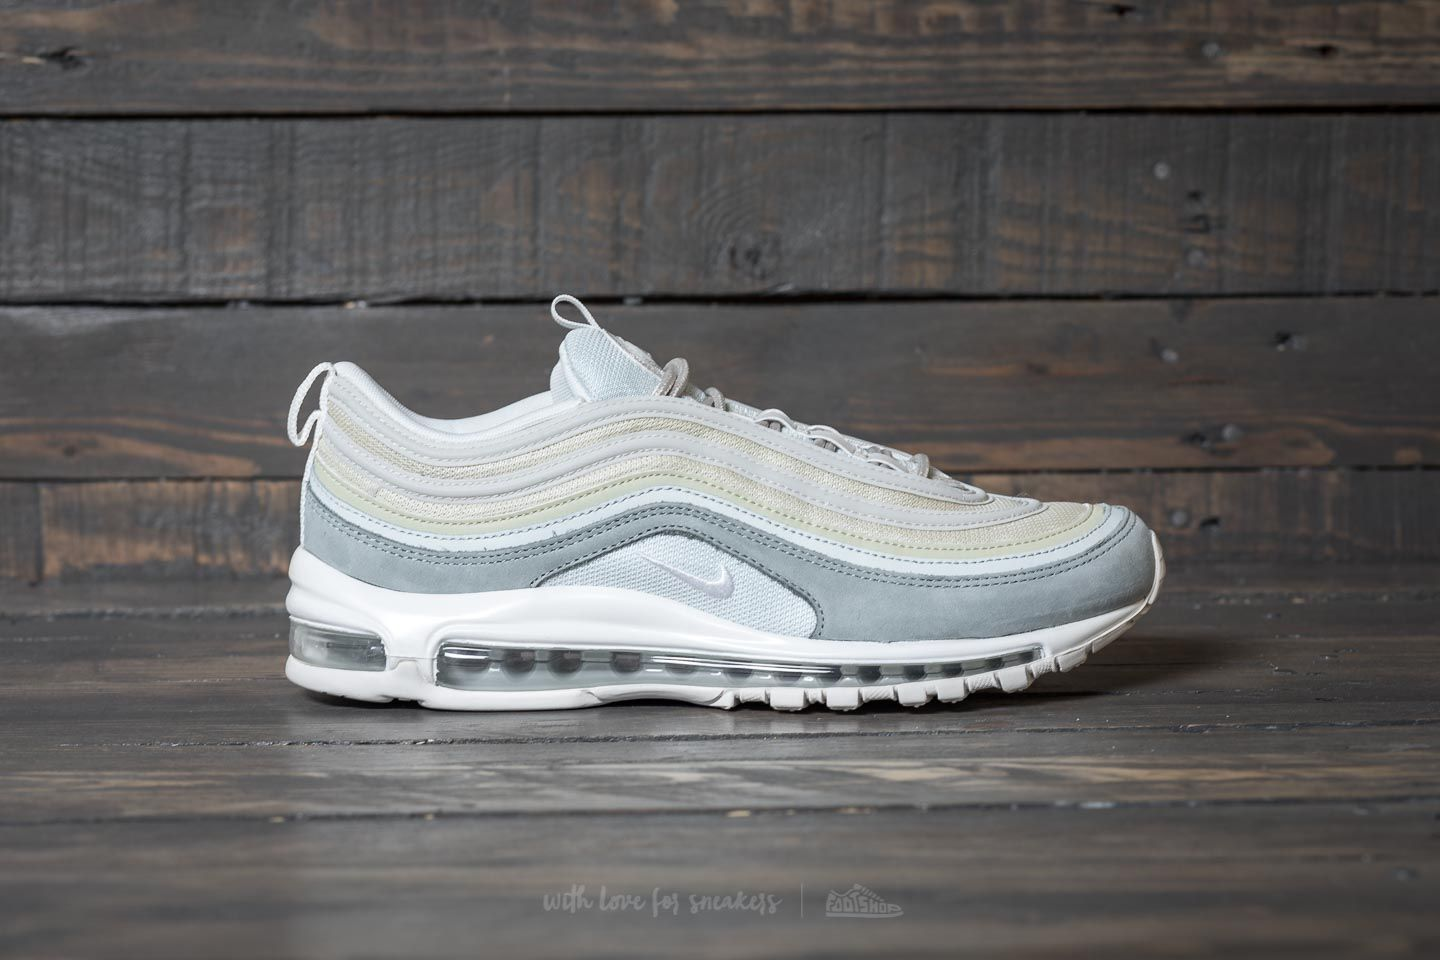 Nike Air Max 97 Light Pumice